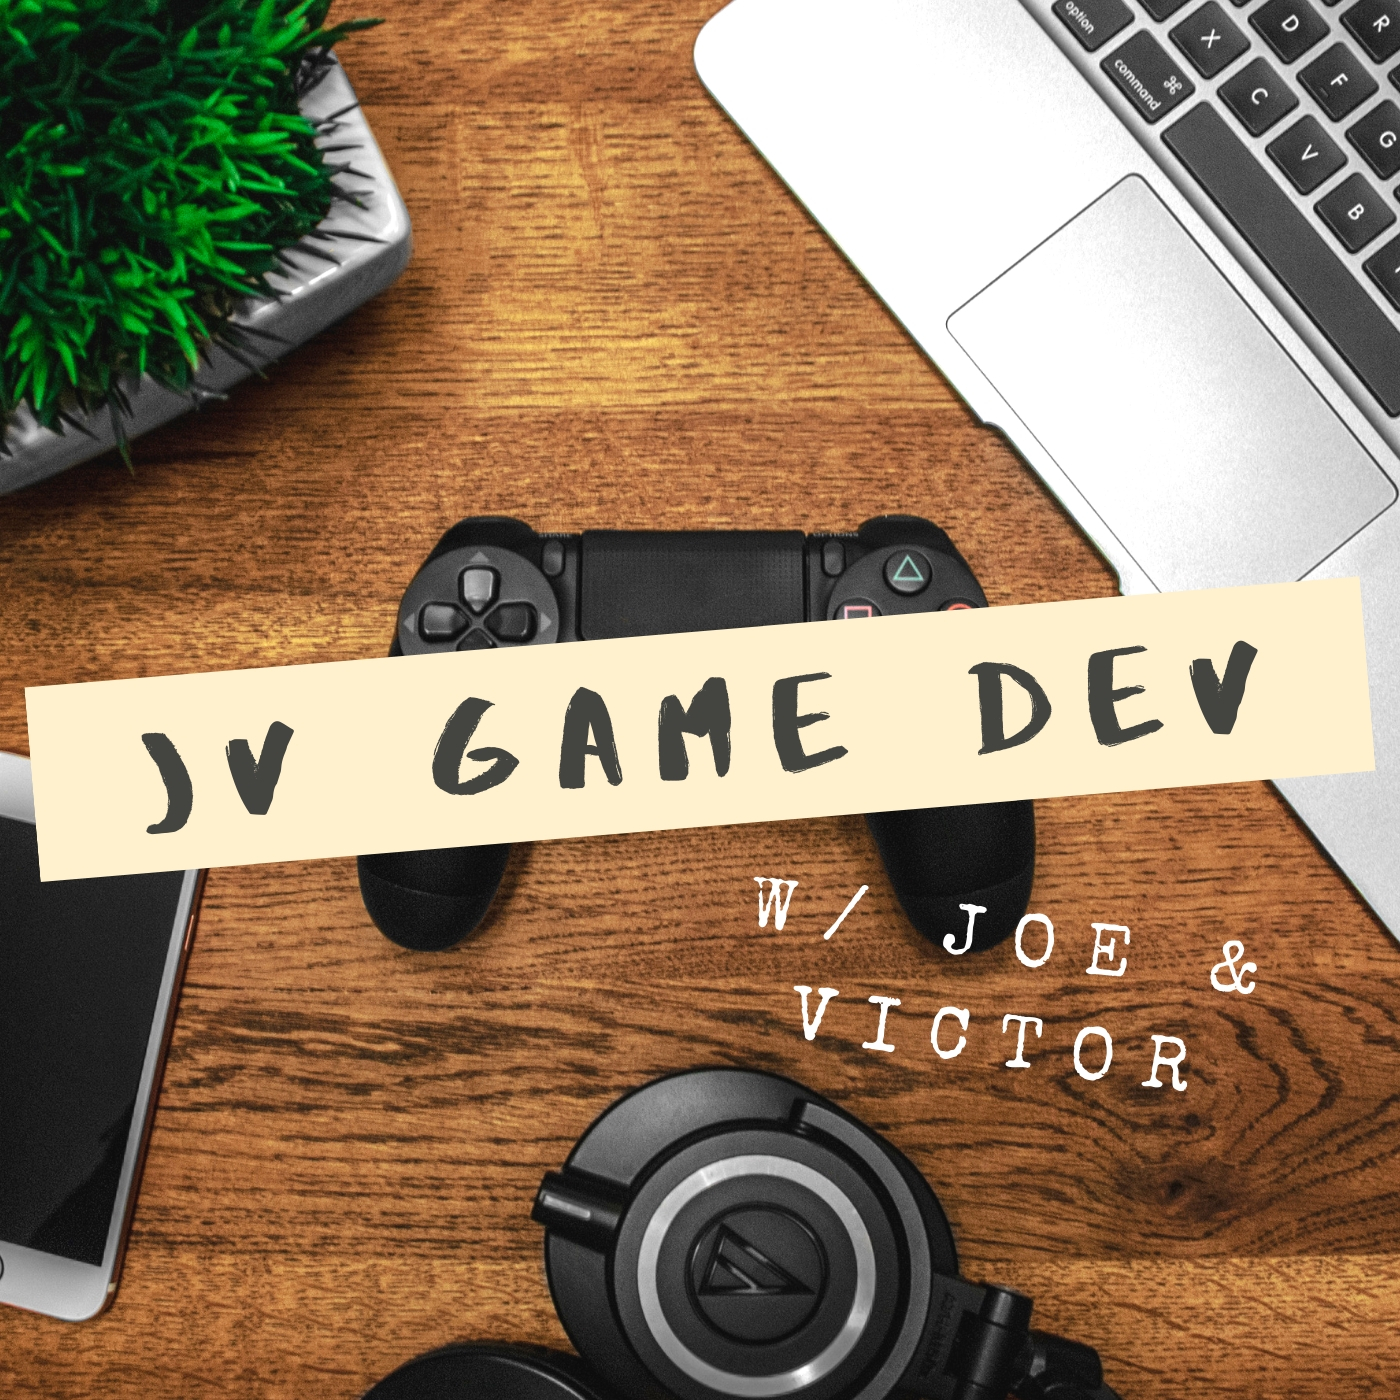 Episode 19 – Becoming the Dealer – JV Game Dev